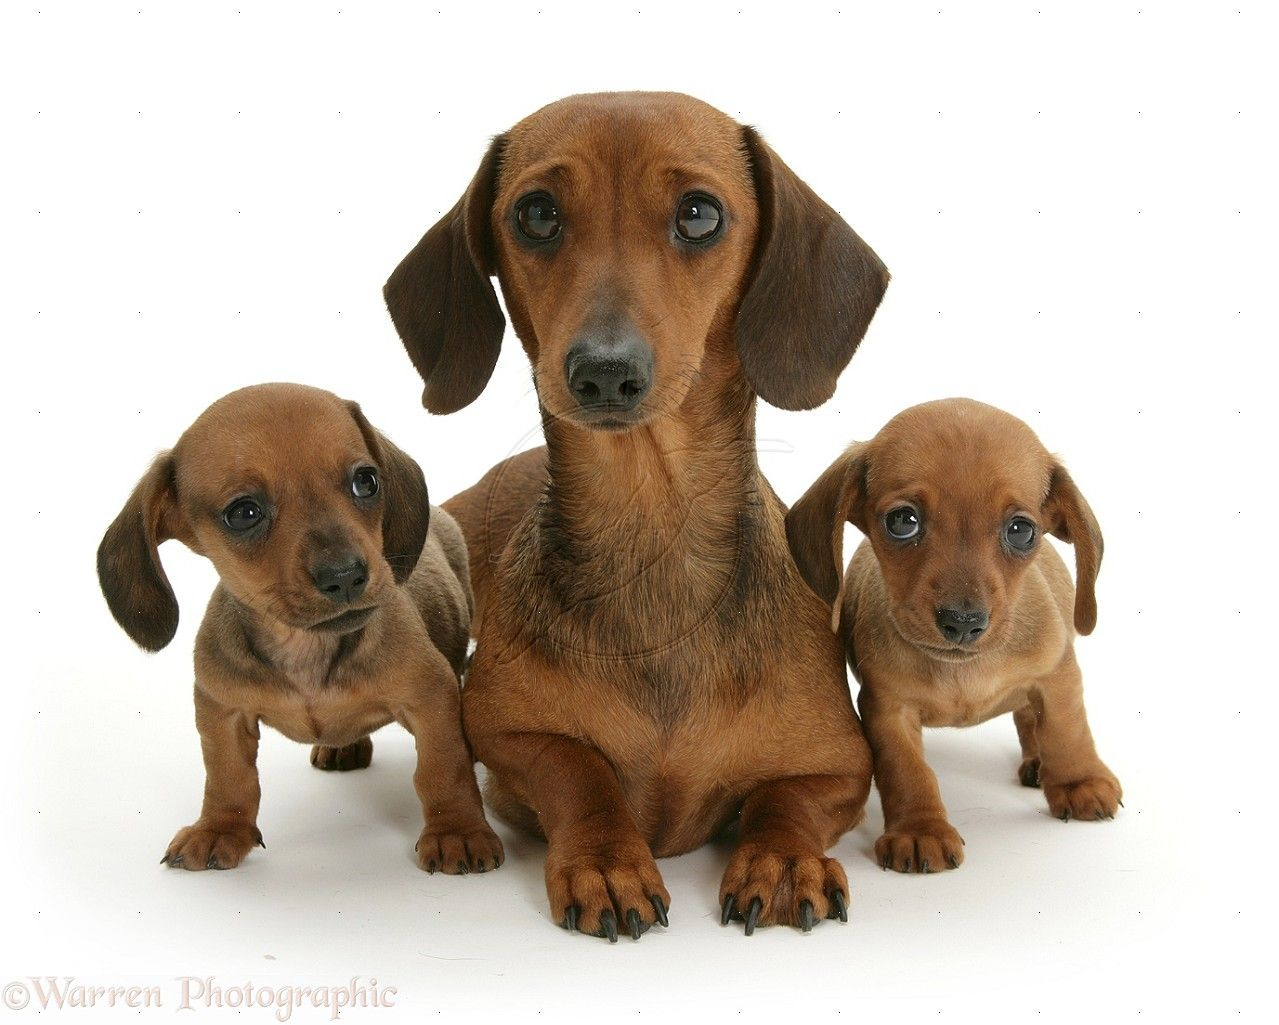 Dachshund Puppies Wp09697 Dachshund Mother And Puppies